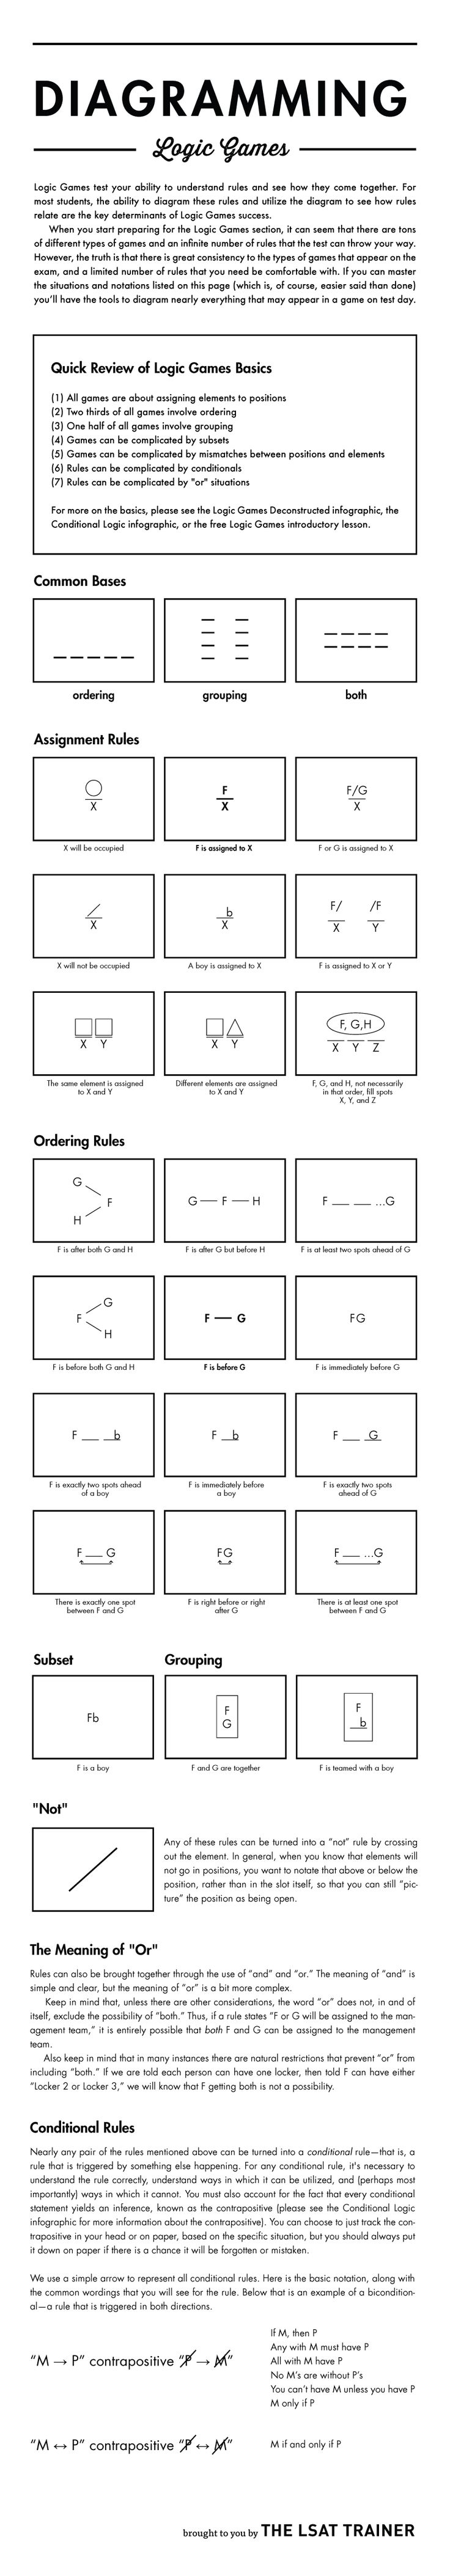 Diagramming Logic Games these are likely all the